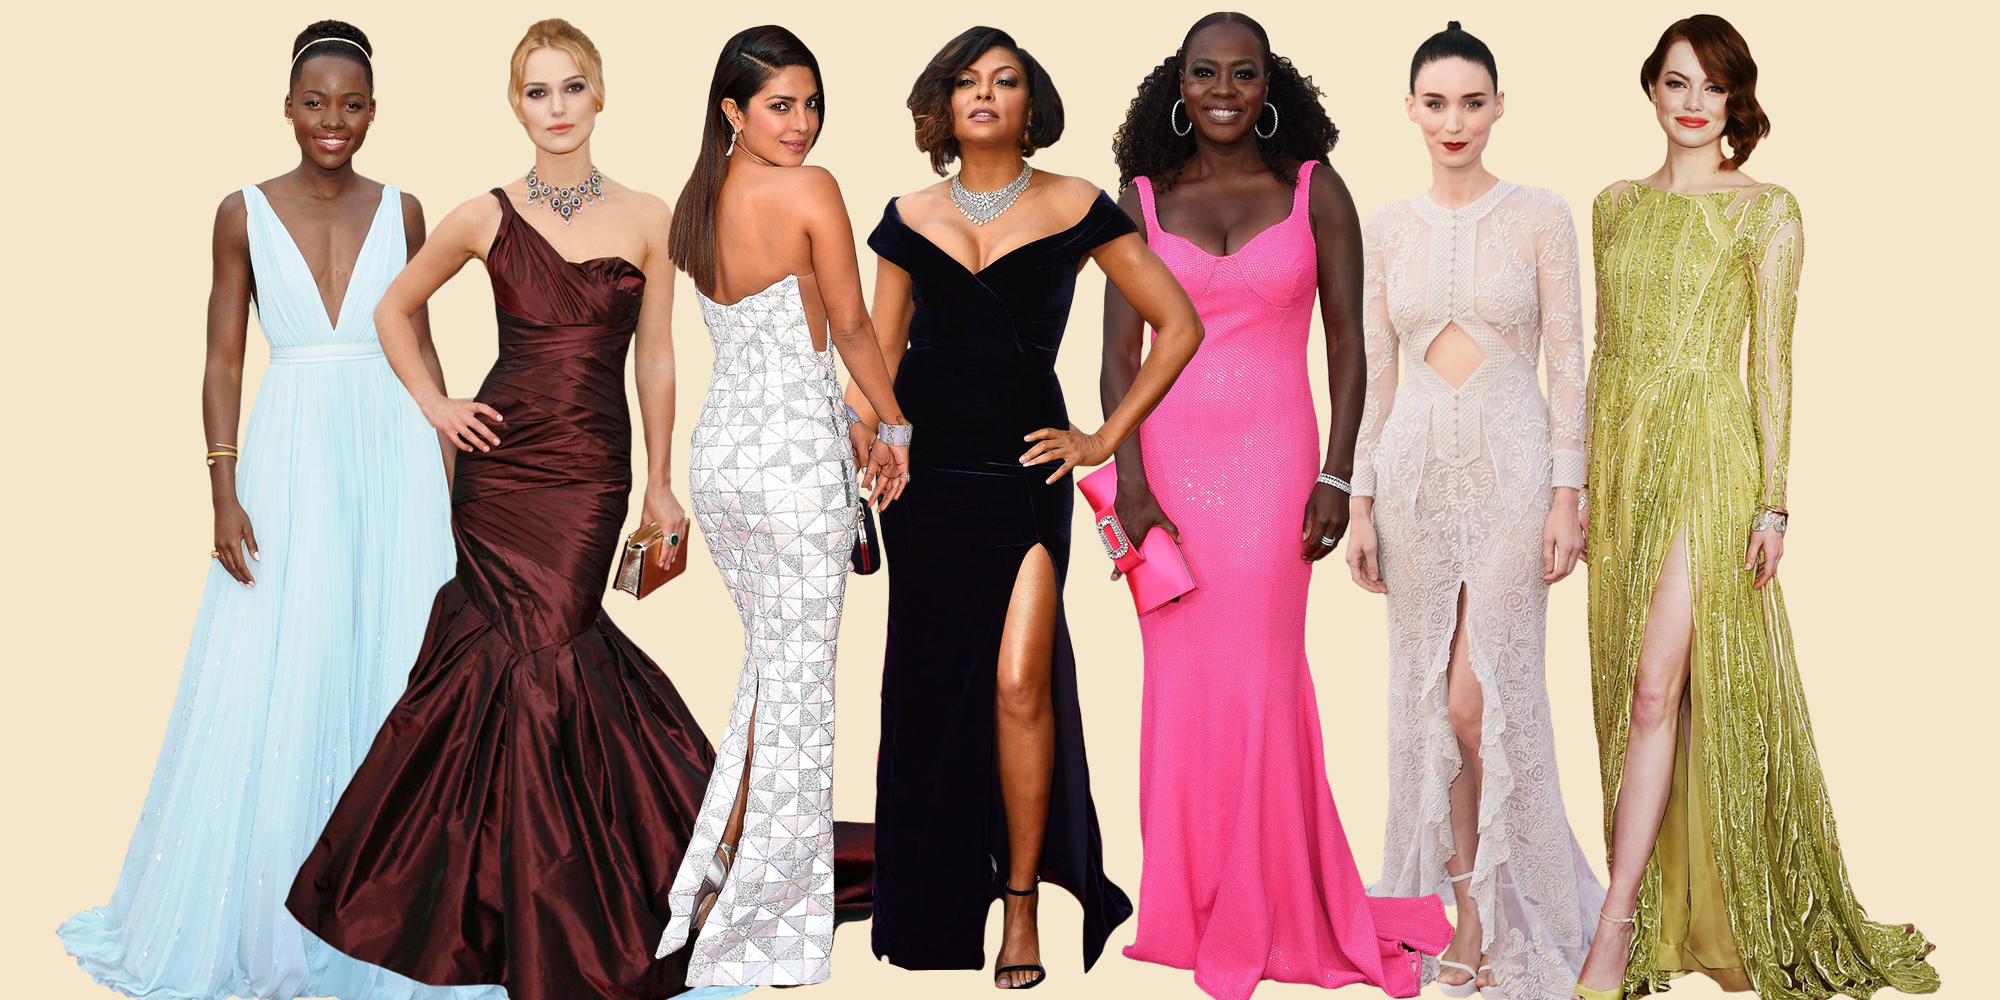 The 65 Most Iconic Oscar Dresses of All Time